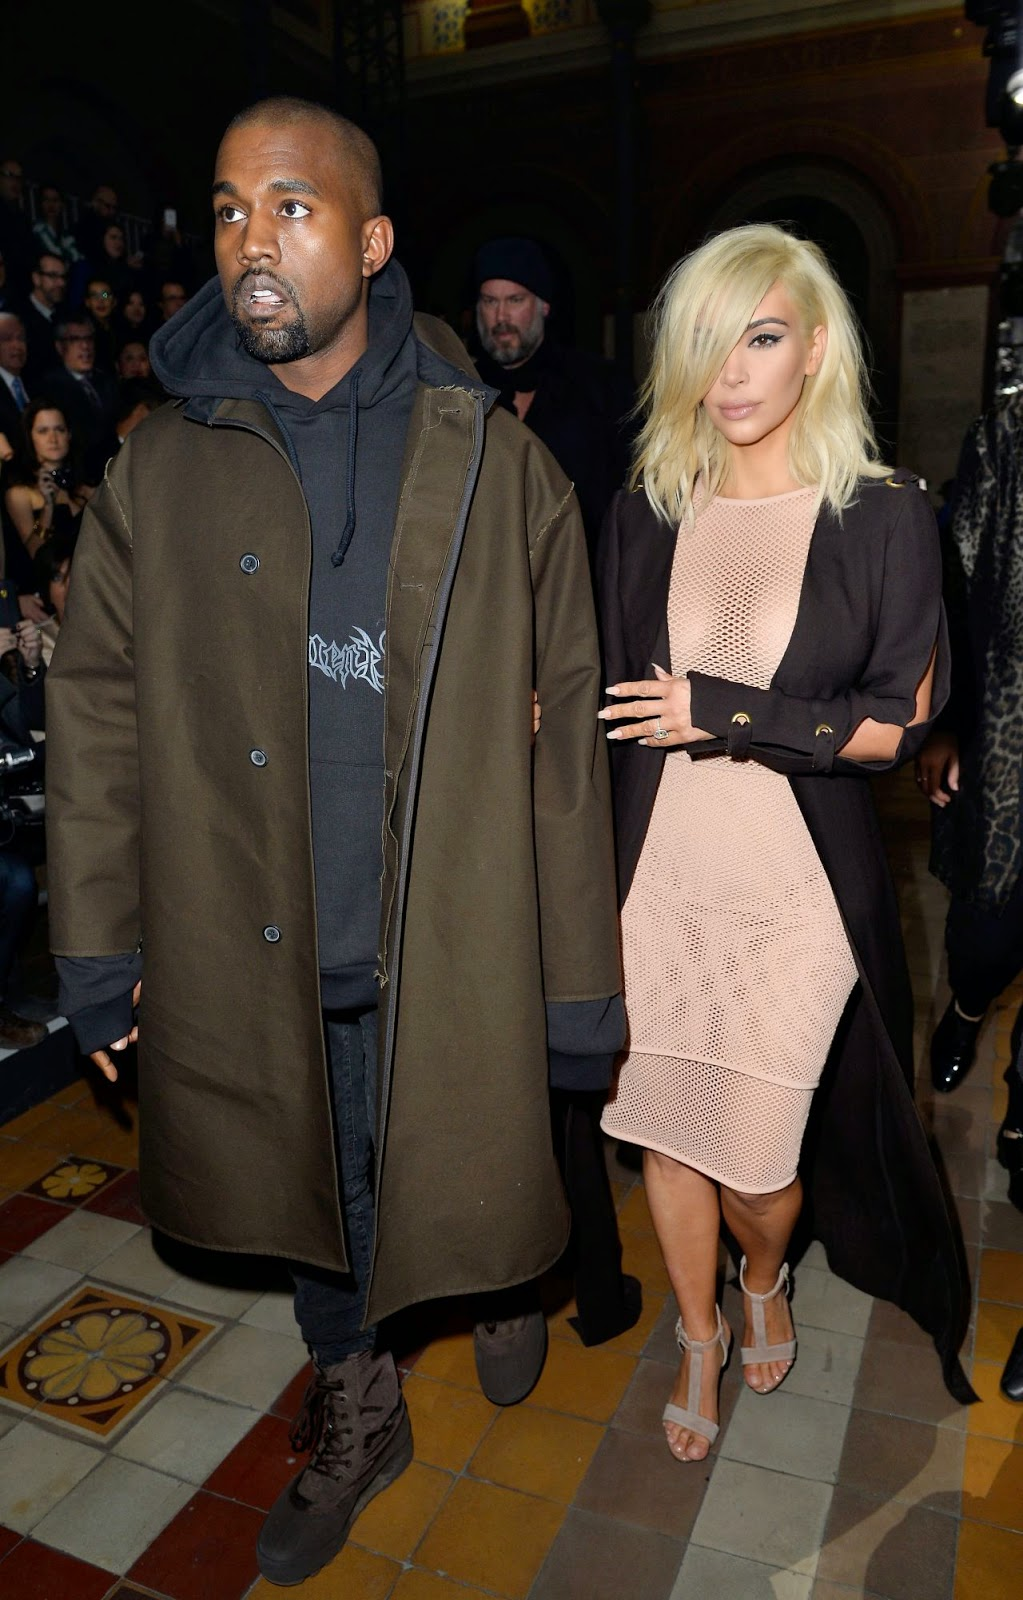 Kim Kardashian goes braless in a sheer mesh dress at the Lanvin Paris Fashion Week Show